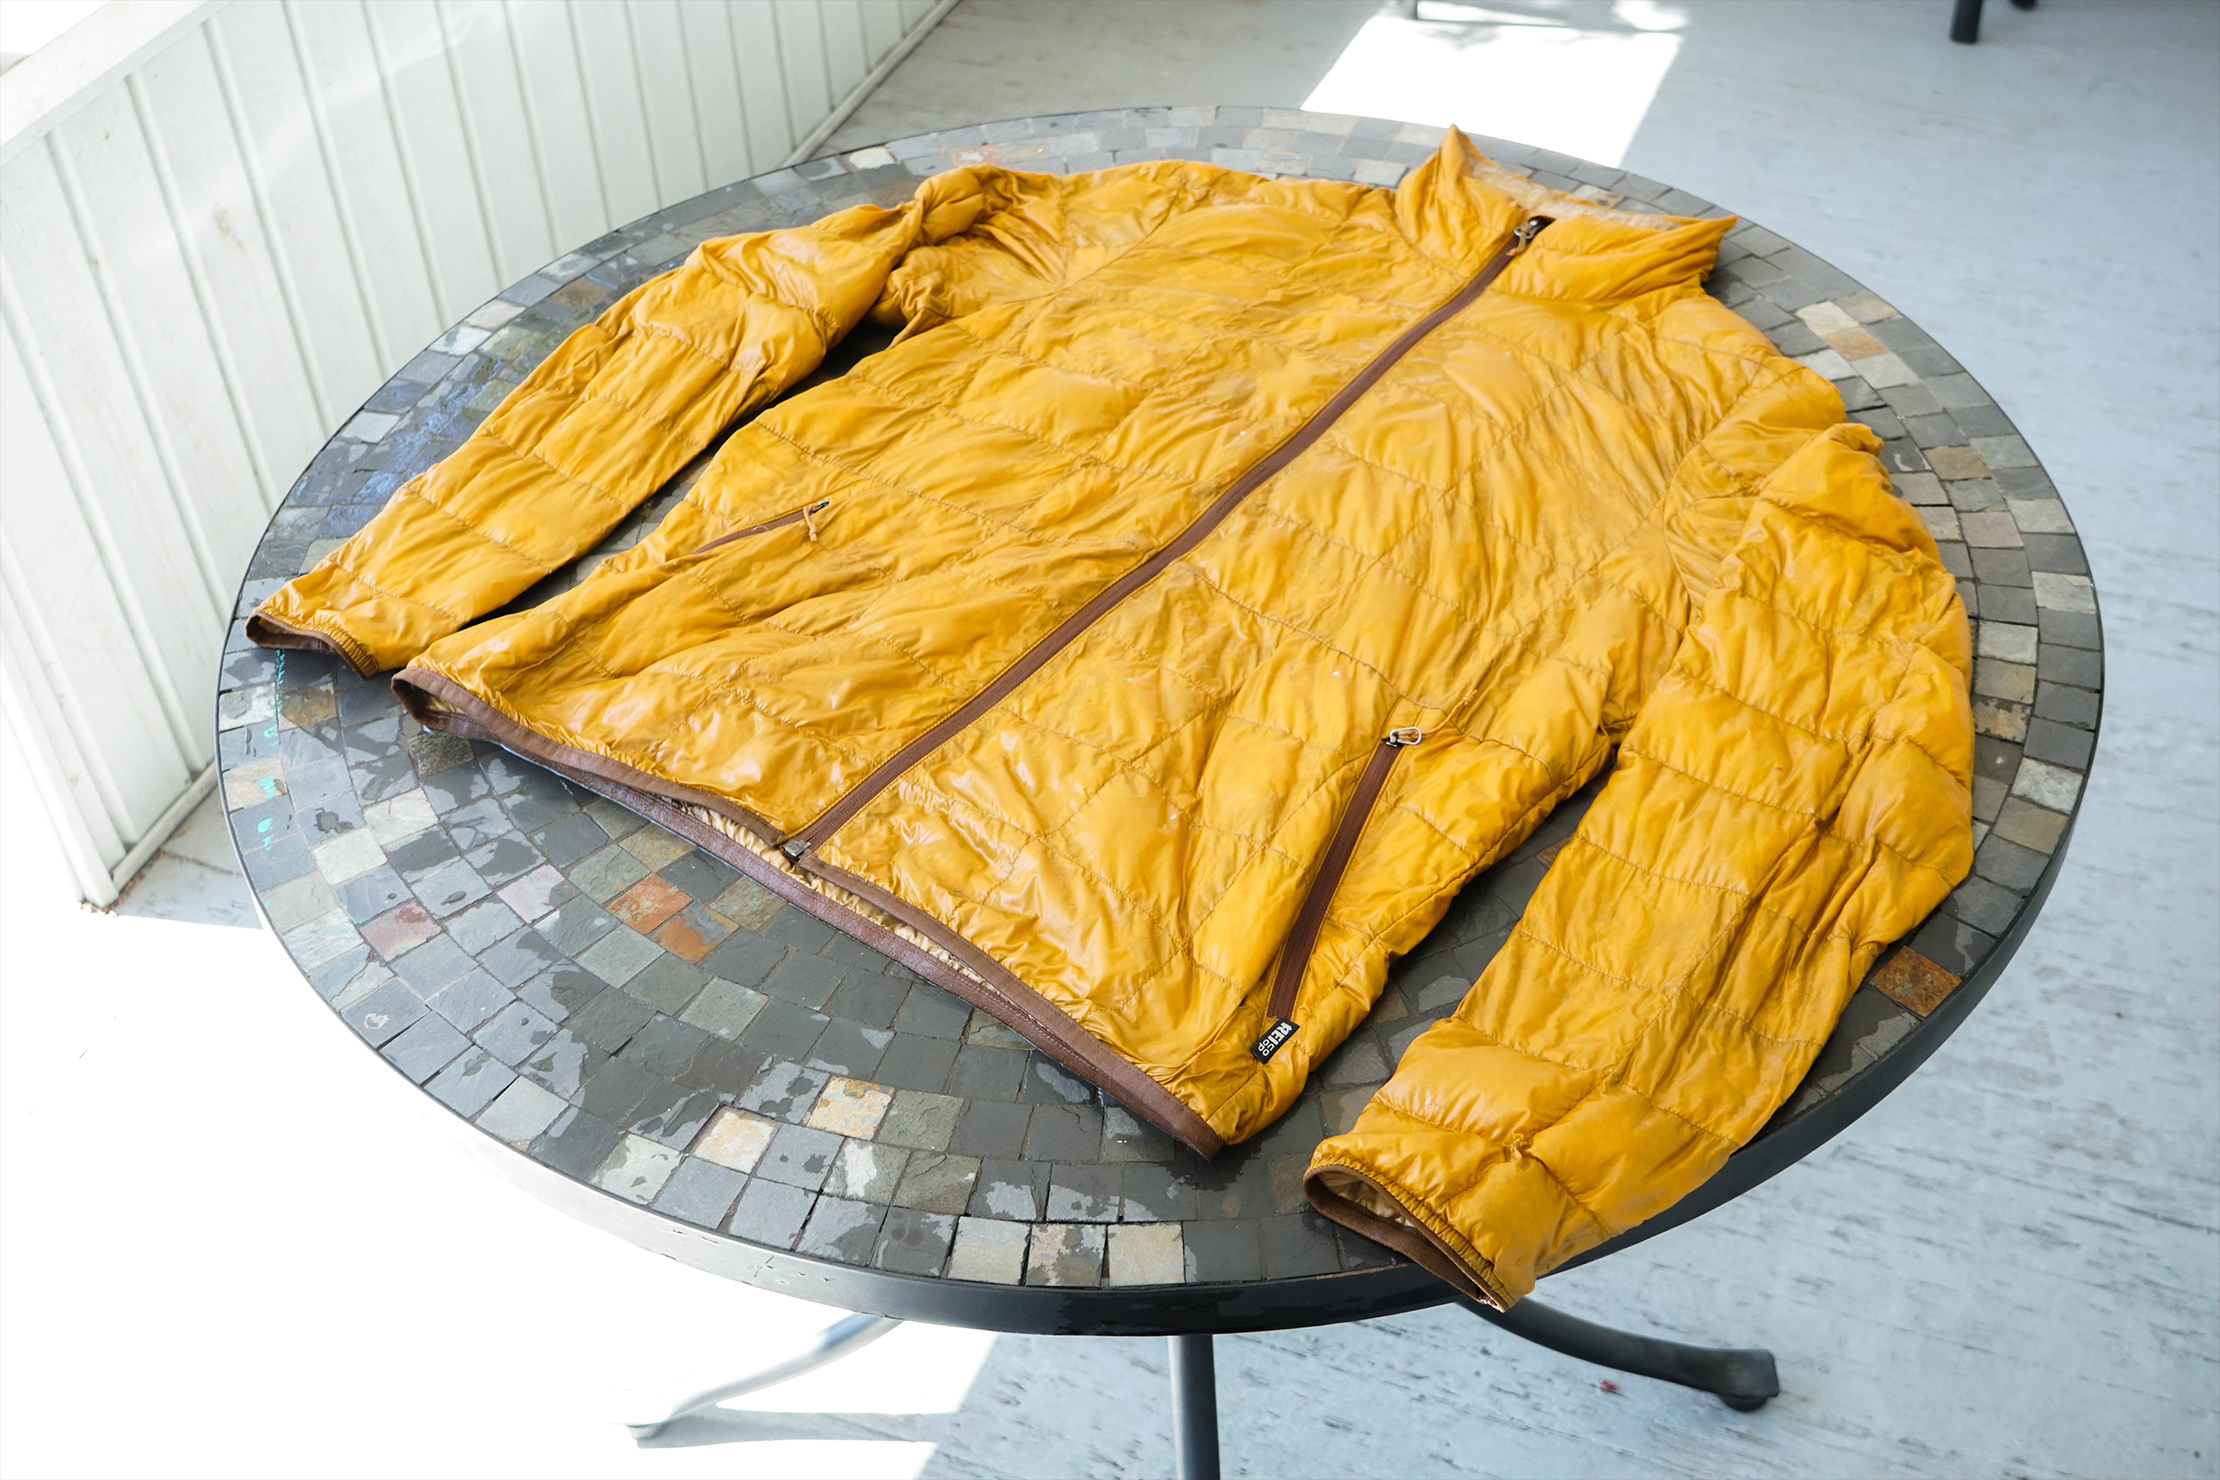 Laying Out Jacket to Dry